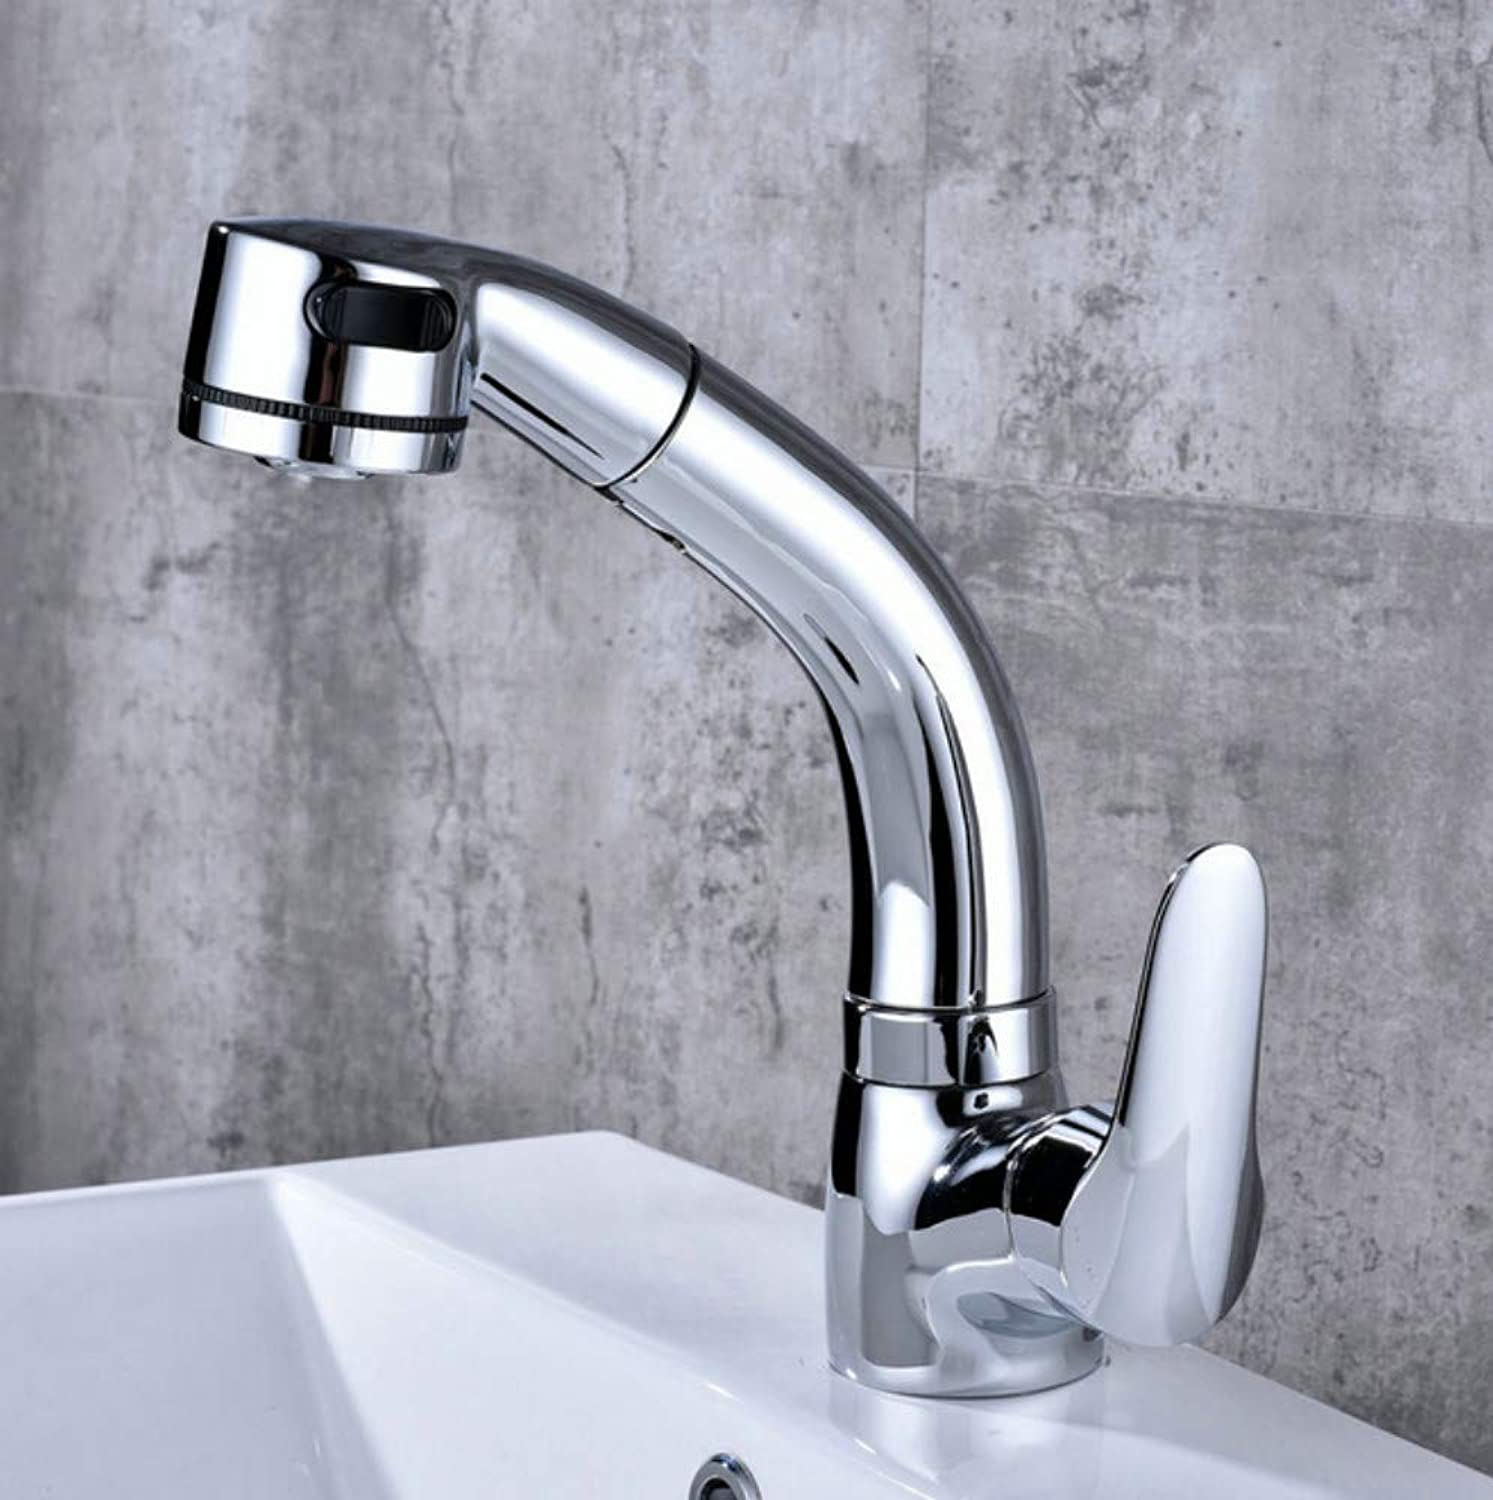 Xiujie Faucet Hot and Cold Mixed Bathroom Washbasin Faucet Button Adjusts The Water Form to Pull The Pull-Out Faucet